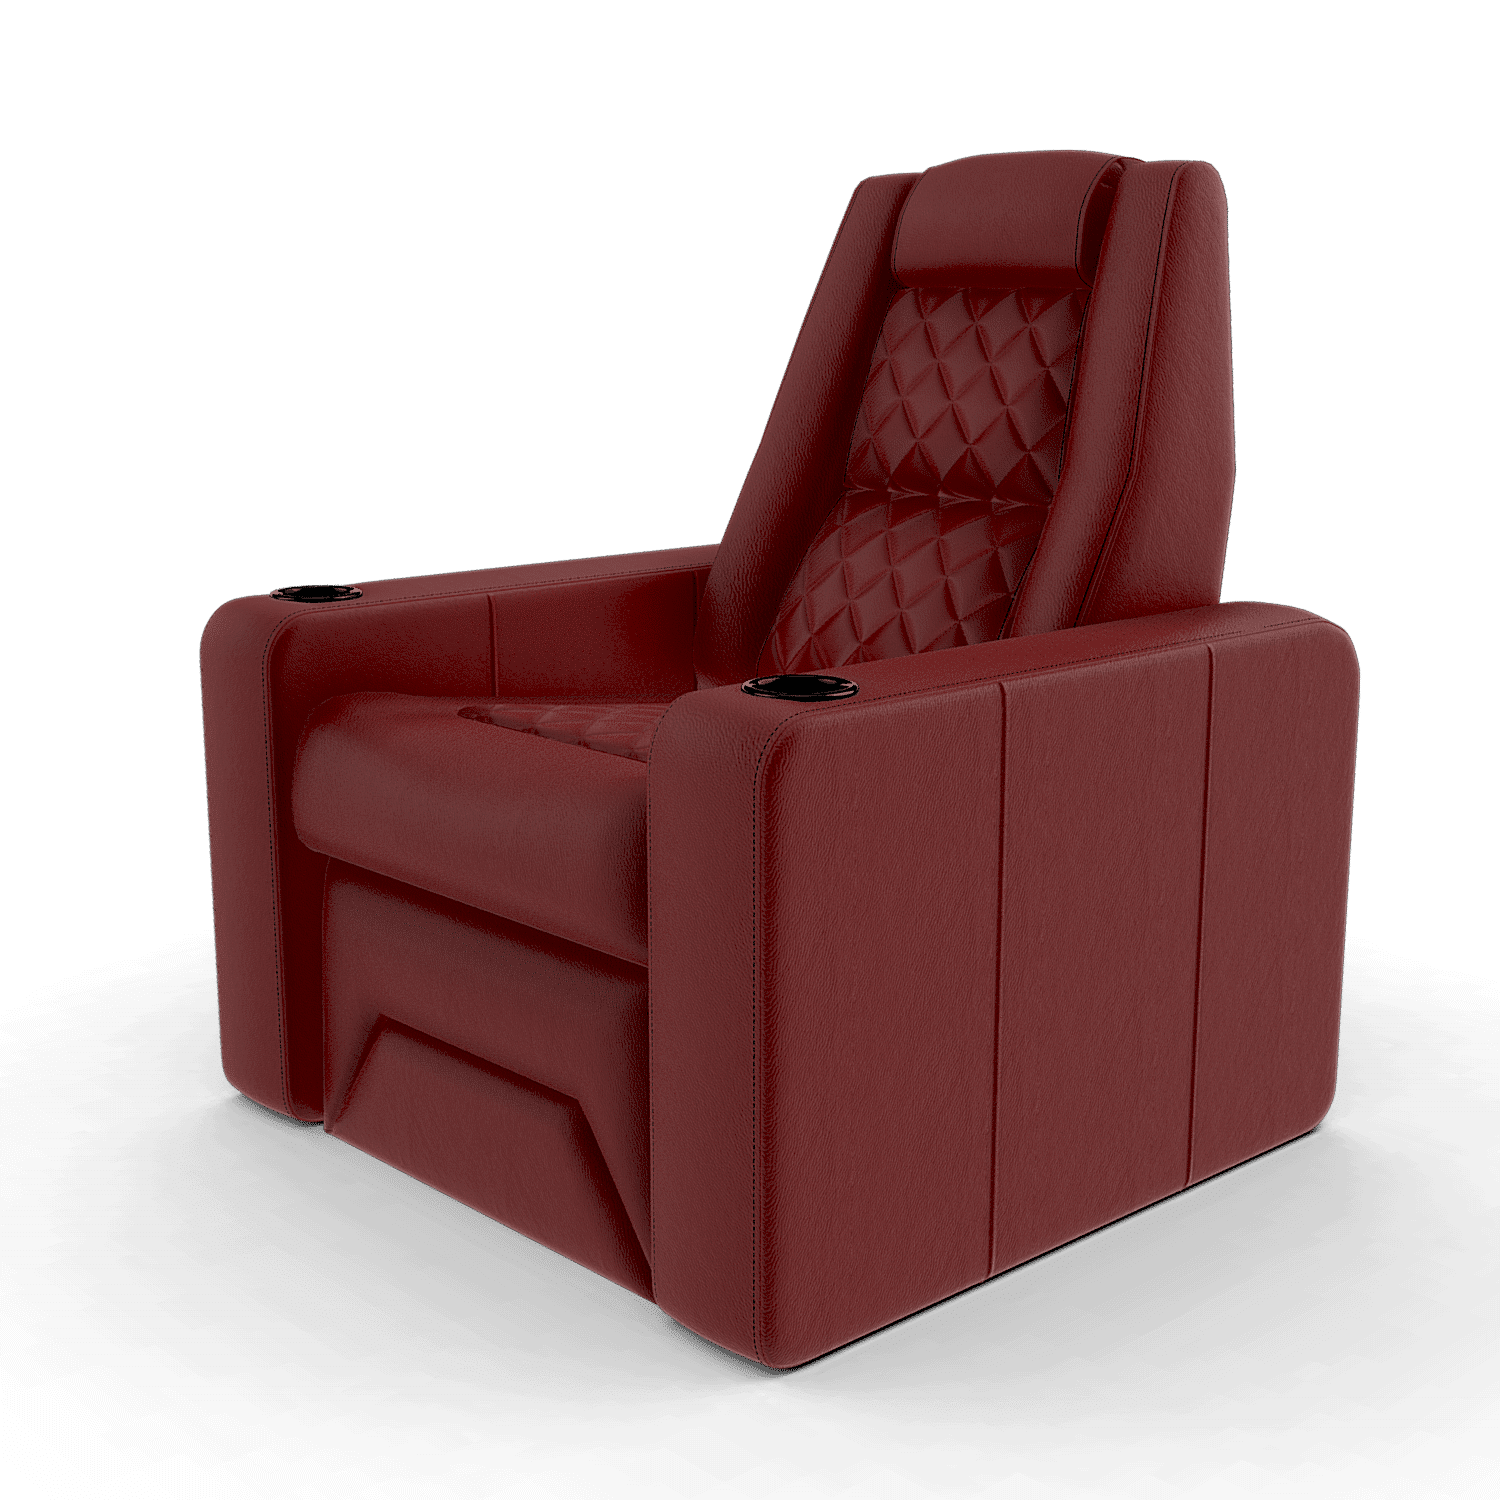 home_theater_chairs n1_red_